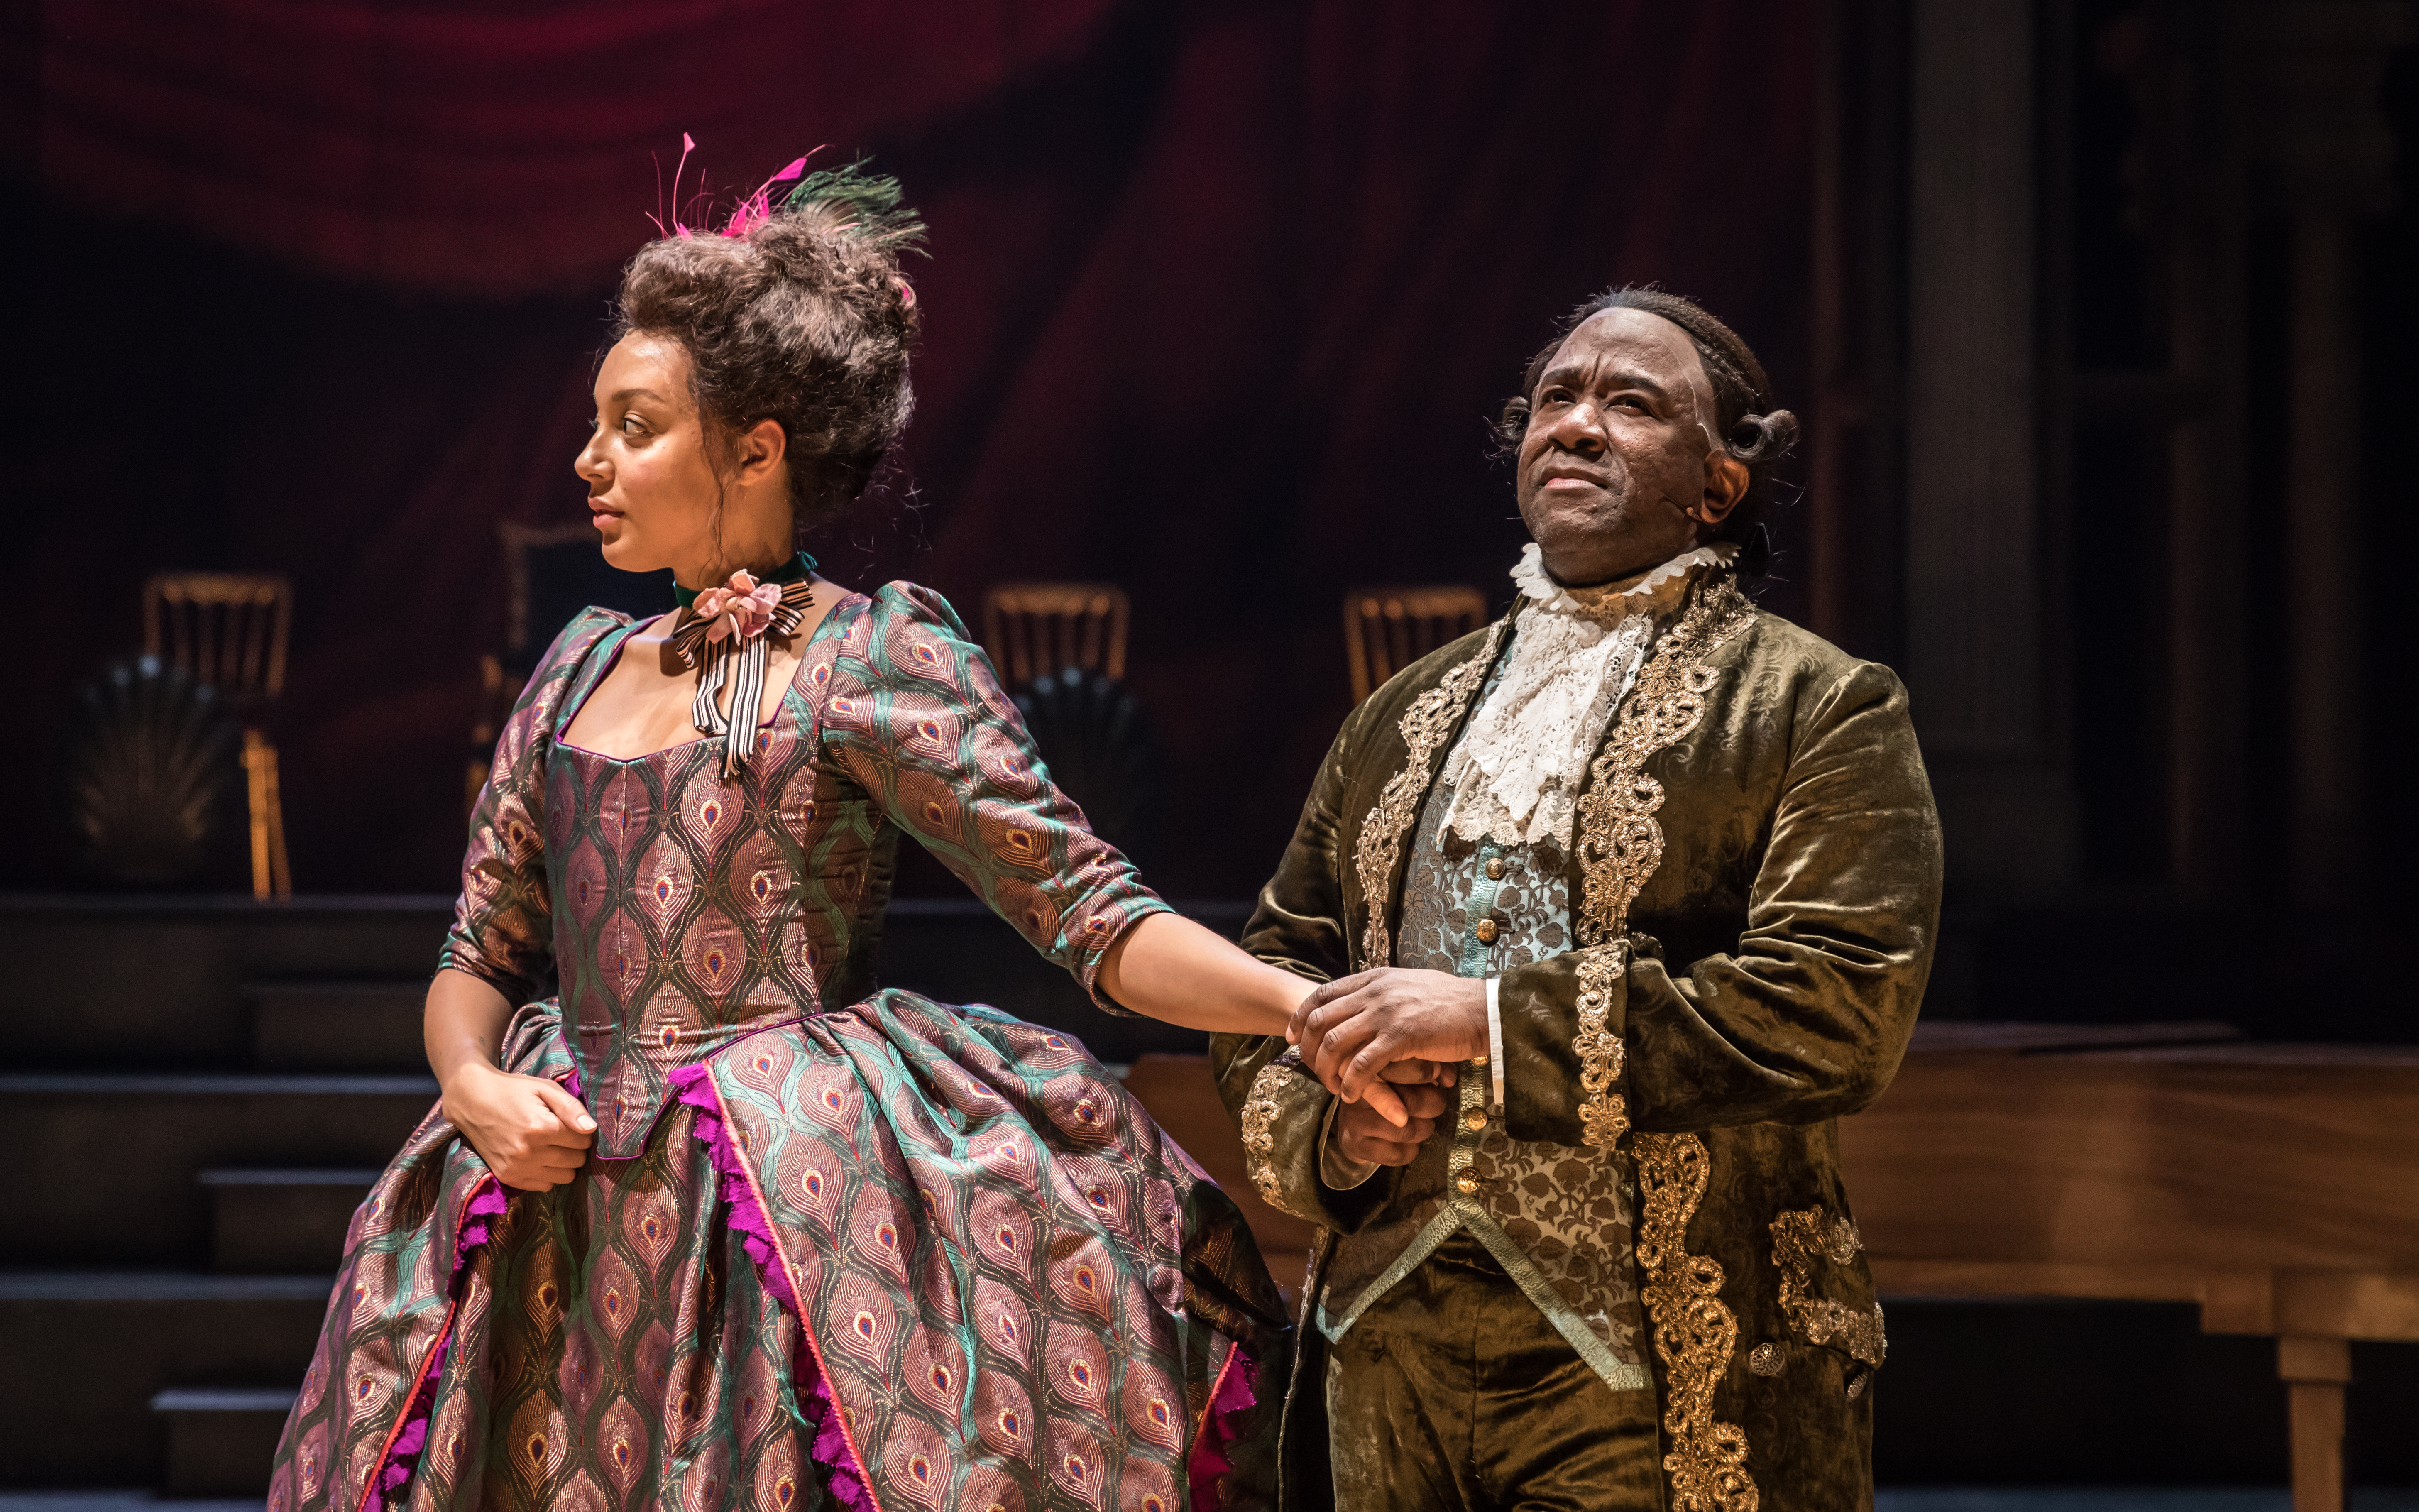 Adelle Leonce as Constanze Weber and Lucian Msamati as Antonio Salieri in Amadeus at the National Theatre (c) Marc Brenner